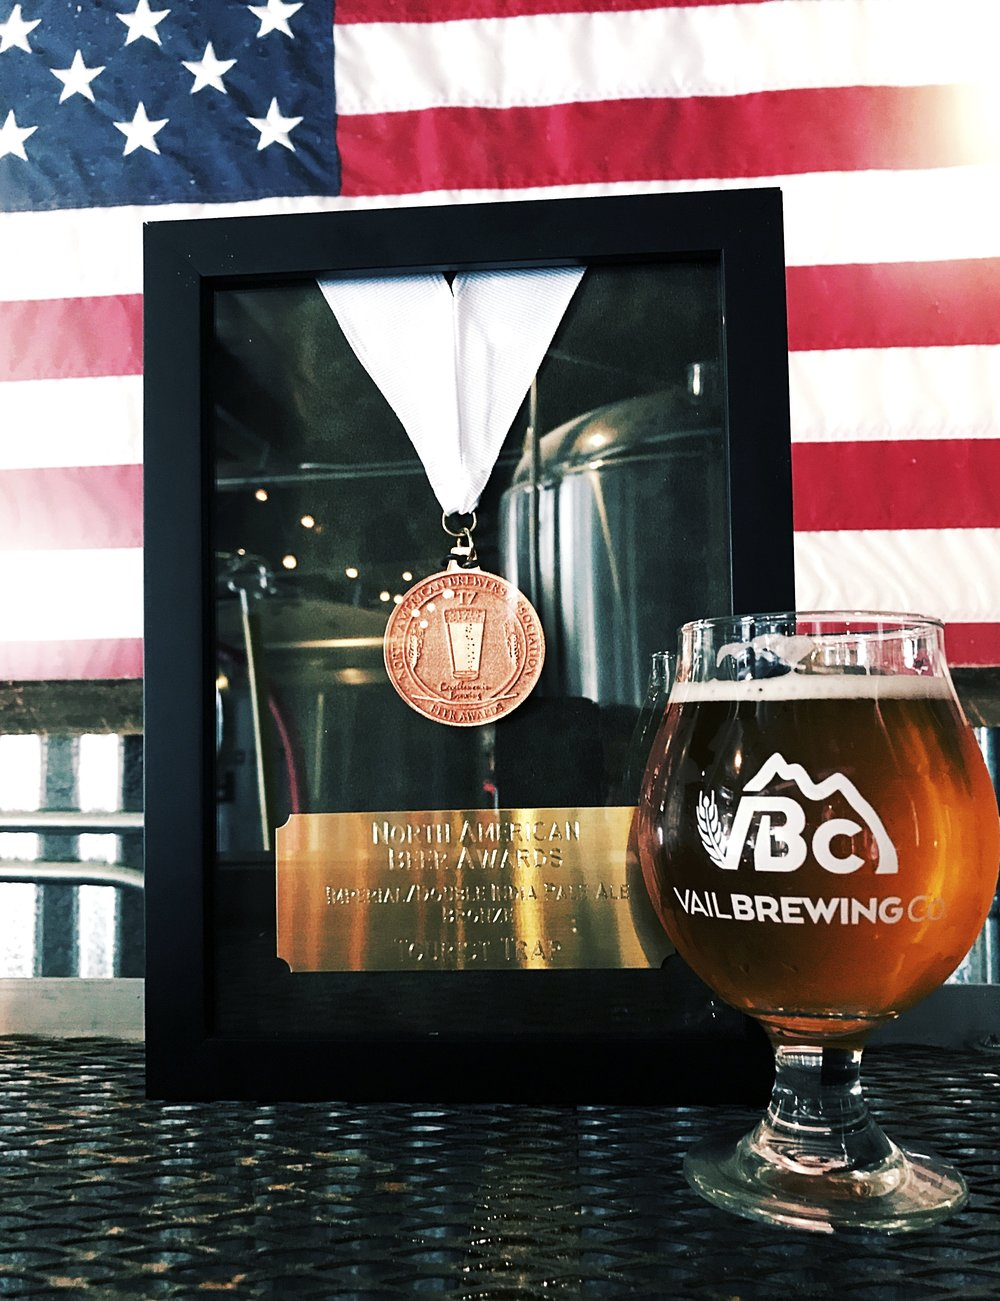 We are extremely proud to have captured the bronze medal at the North American Beer Awards for our Tourist Trap in the Imperial/Double IPA category!! Stop by and try an award winning beer!